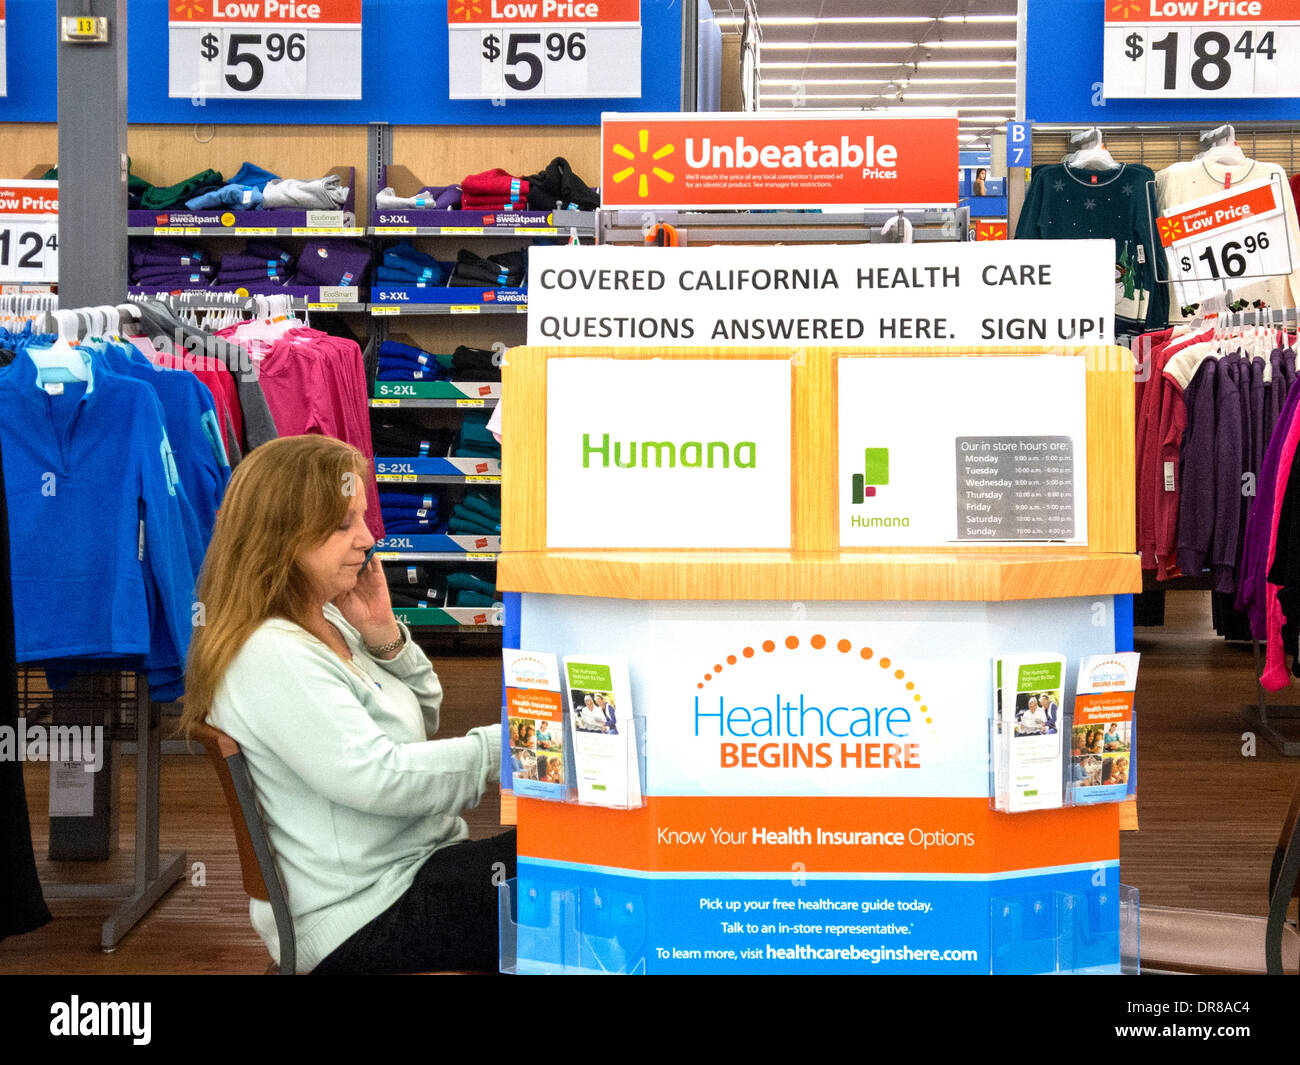 An insurance agent operates a sales kiosk at a Laguna Niguel, CA, discount clothing store offering coverage under the Affordable Healthcare Act or Obamacare, known in the state as Covered California. Note sign and brochures. - Stock Image